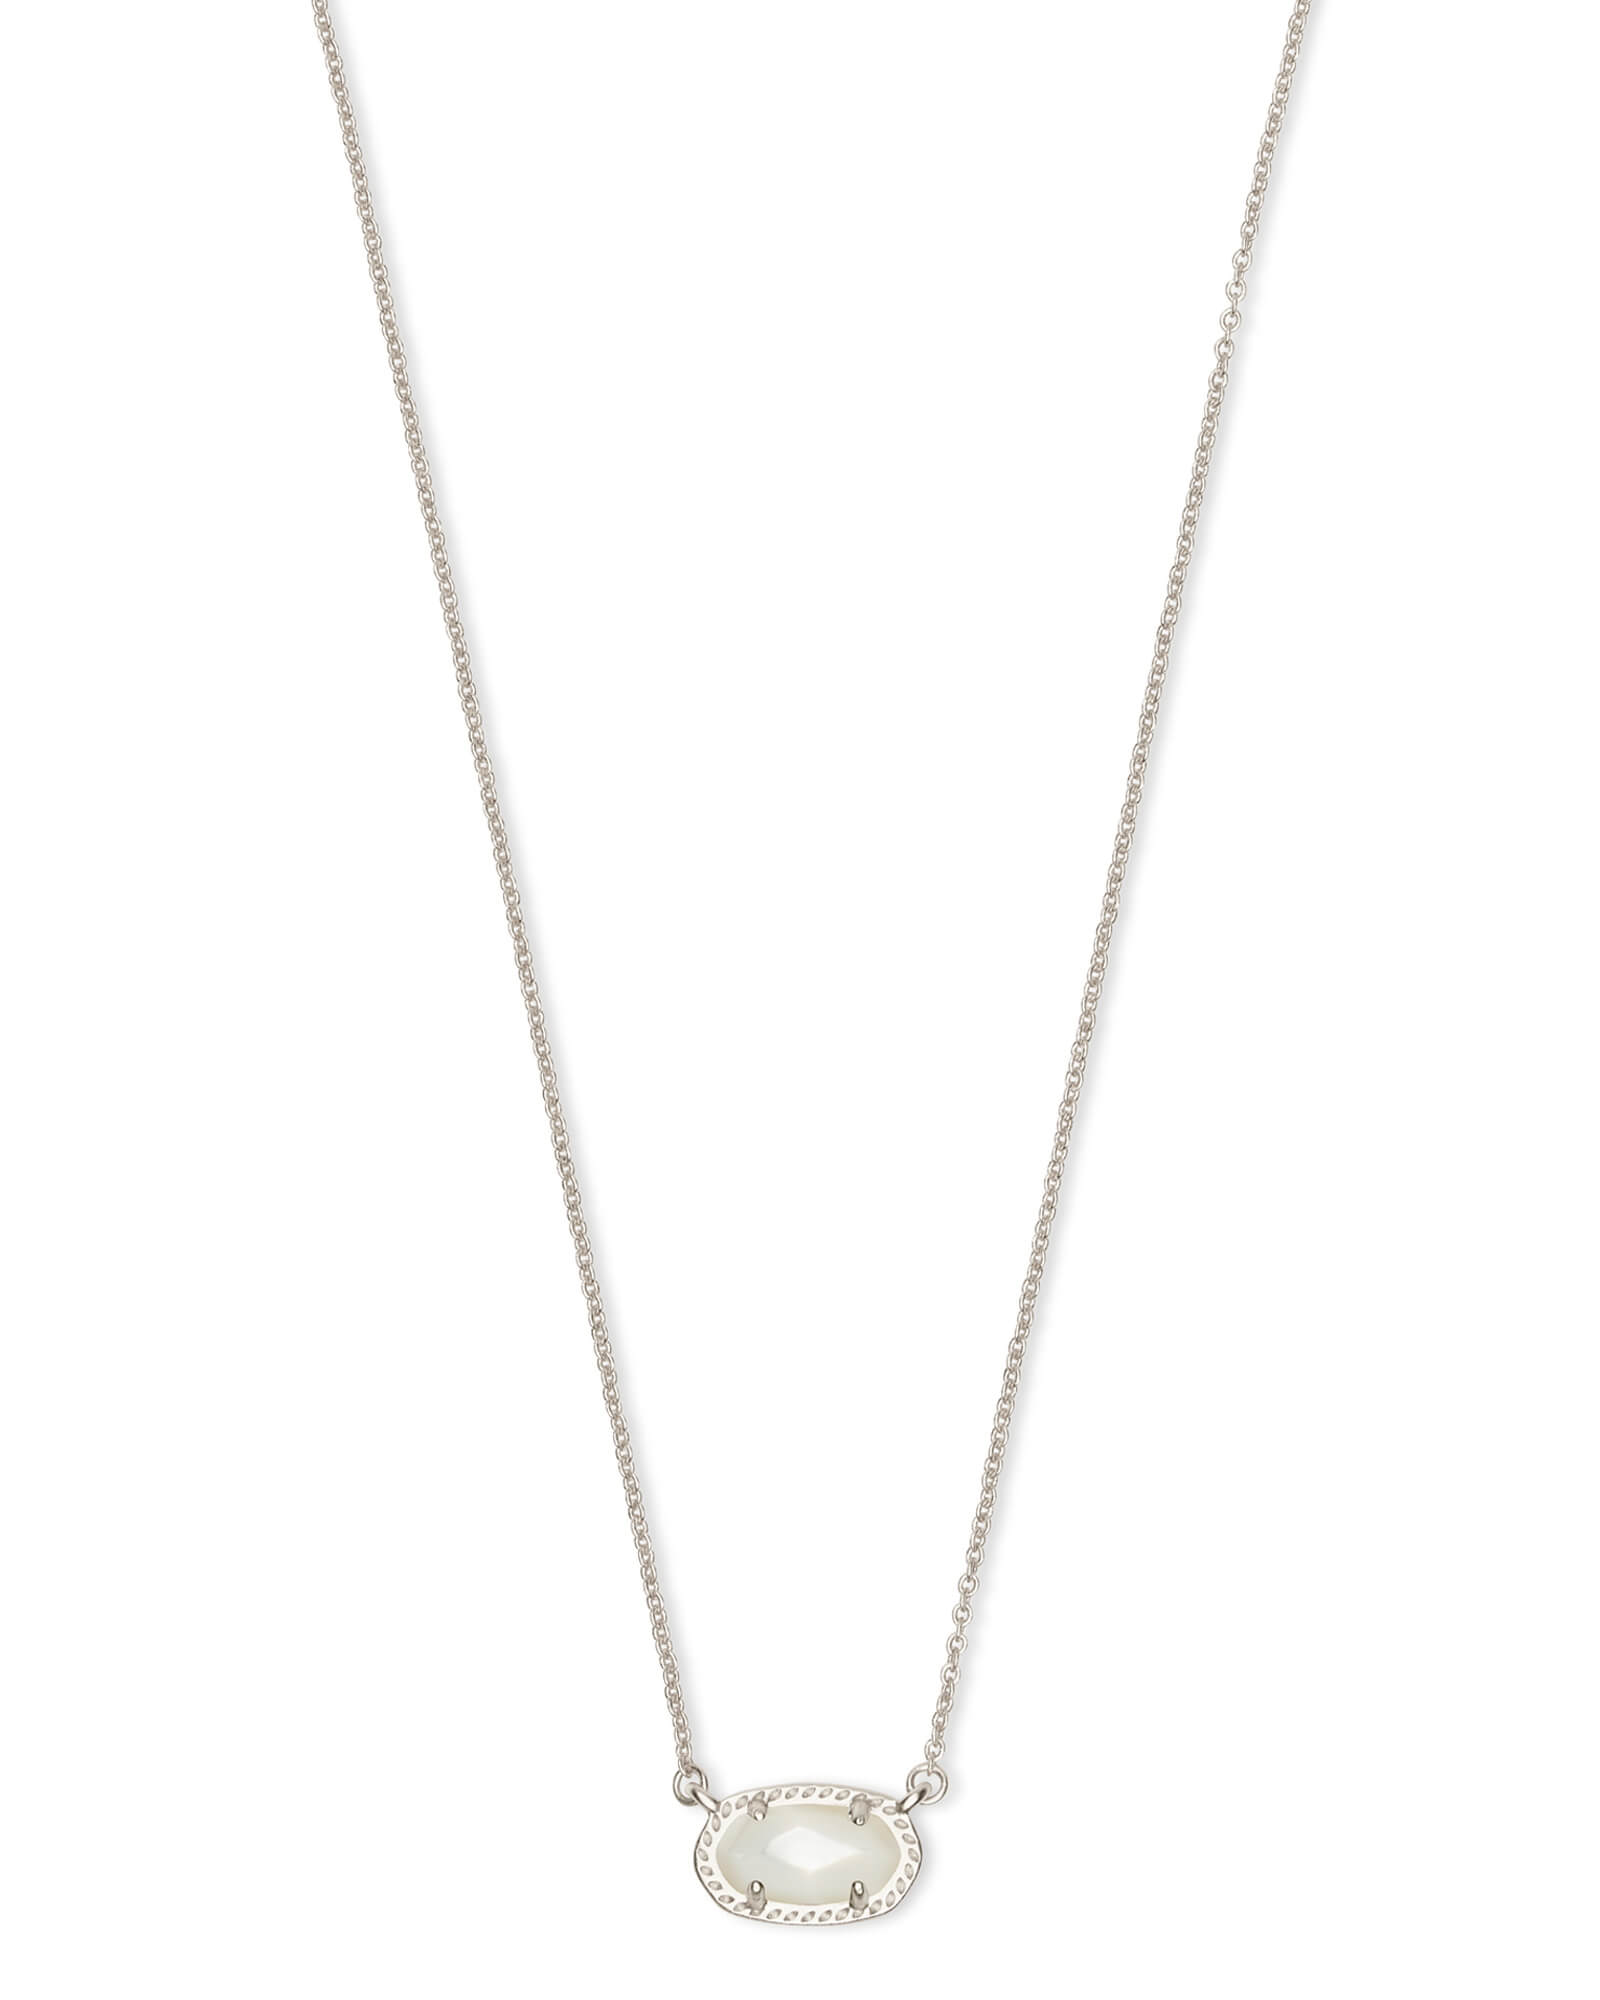 Ember Silver Pendant Necklace in Ivory Pearl